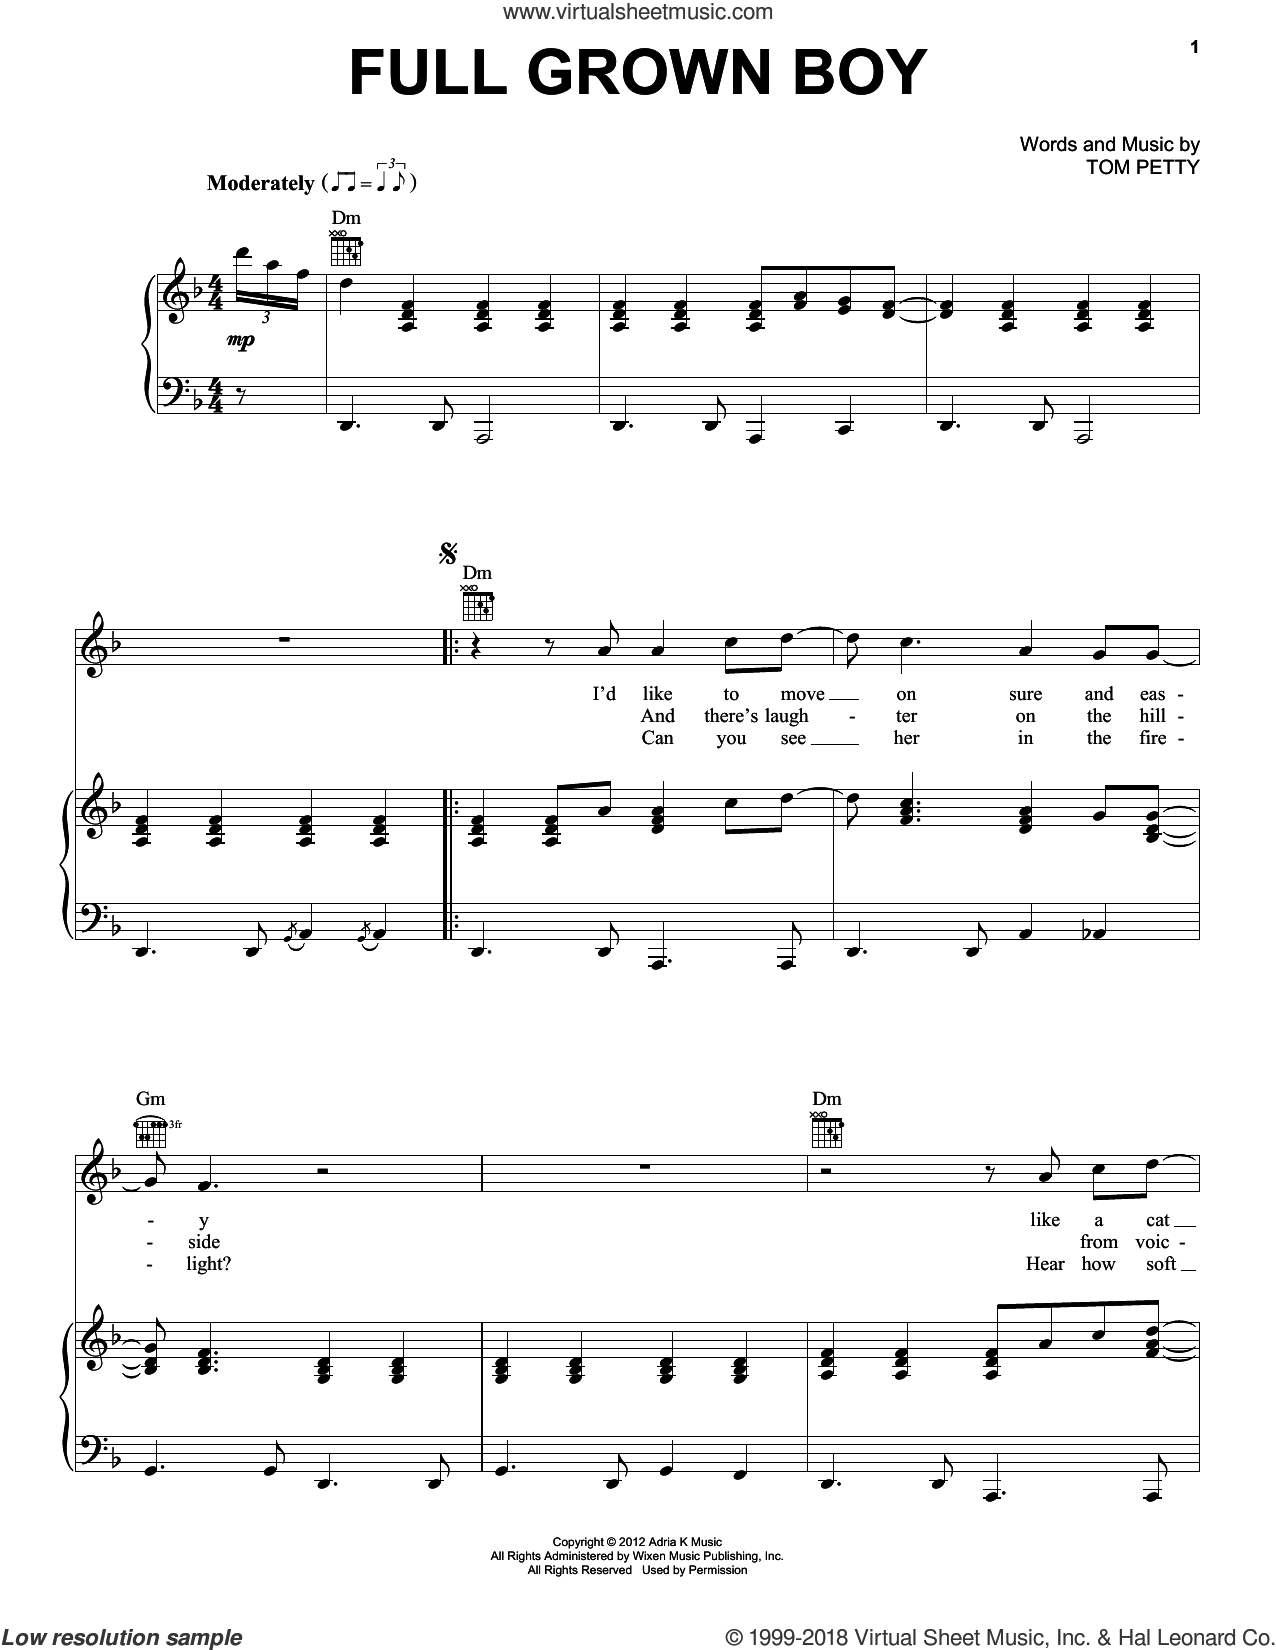 Full Grown Boy sheet music for voice, piano or guitar by Tom Petty and Tom Petty And The Heartbreakers, intermediate skill level